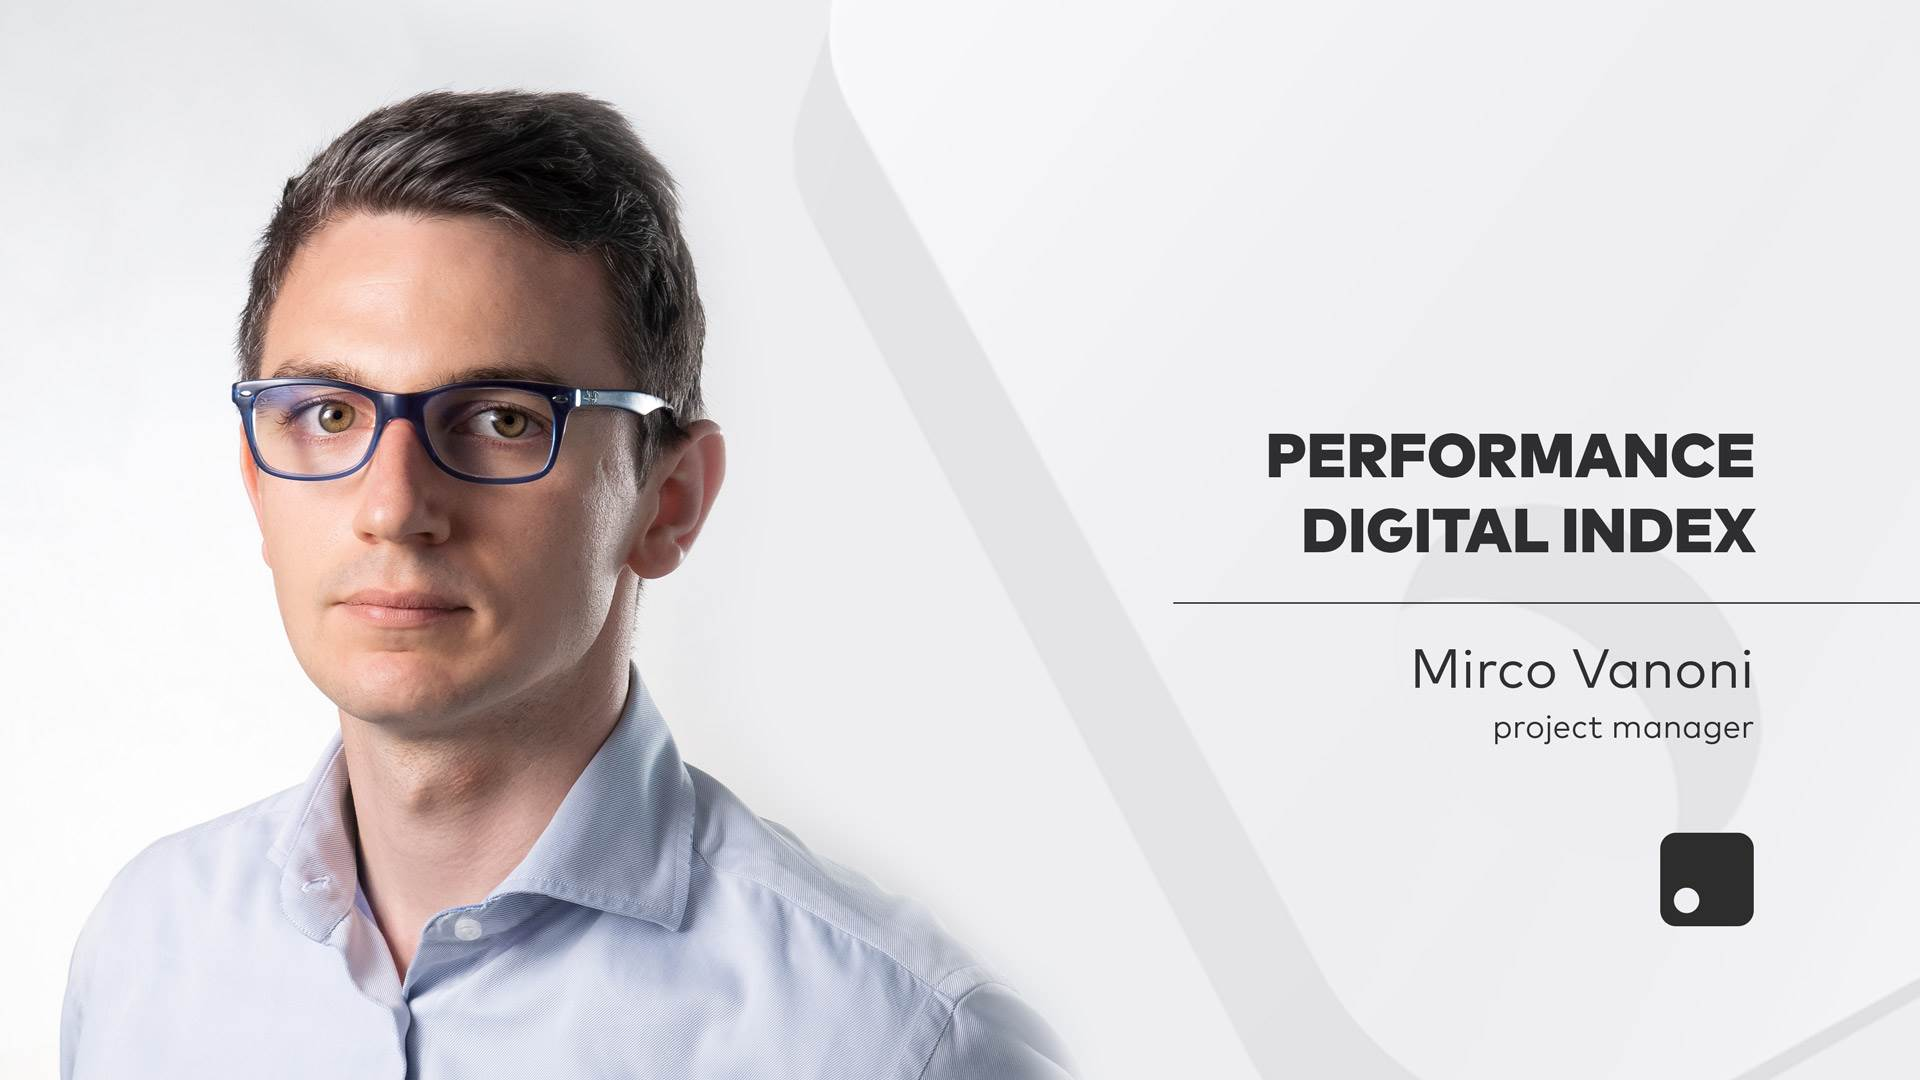 Siglacom Strategy KeynoteIndicatori di performance digitali